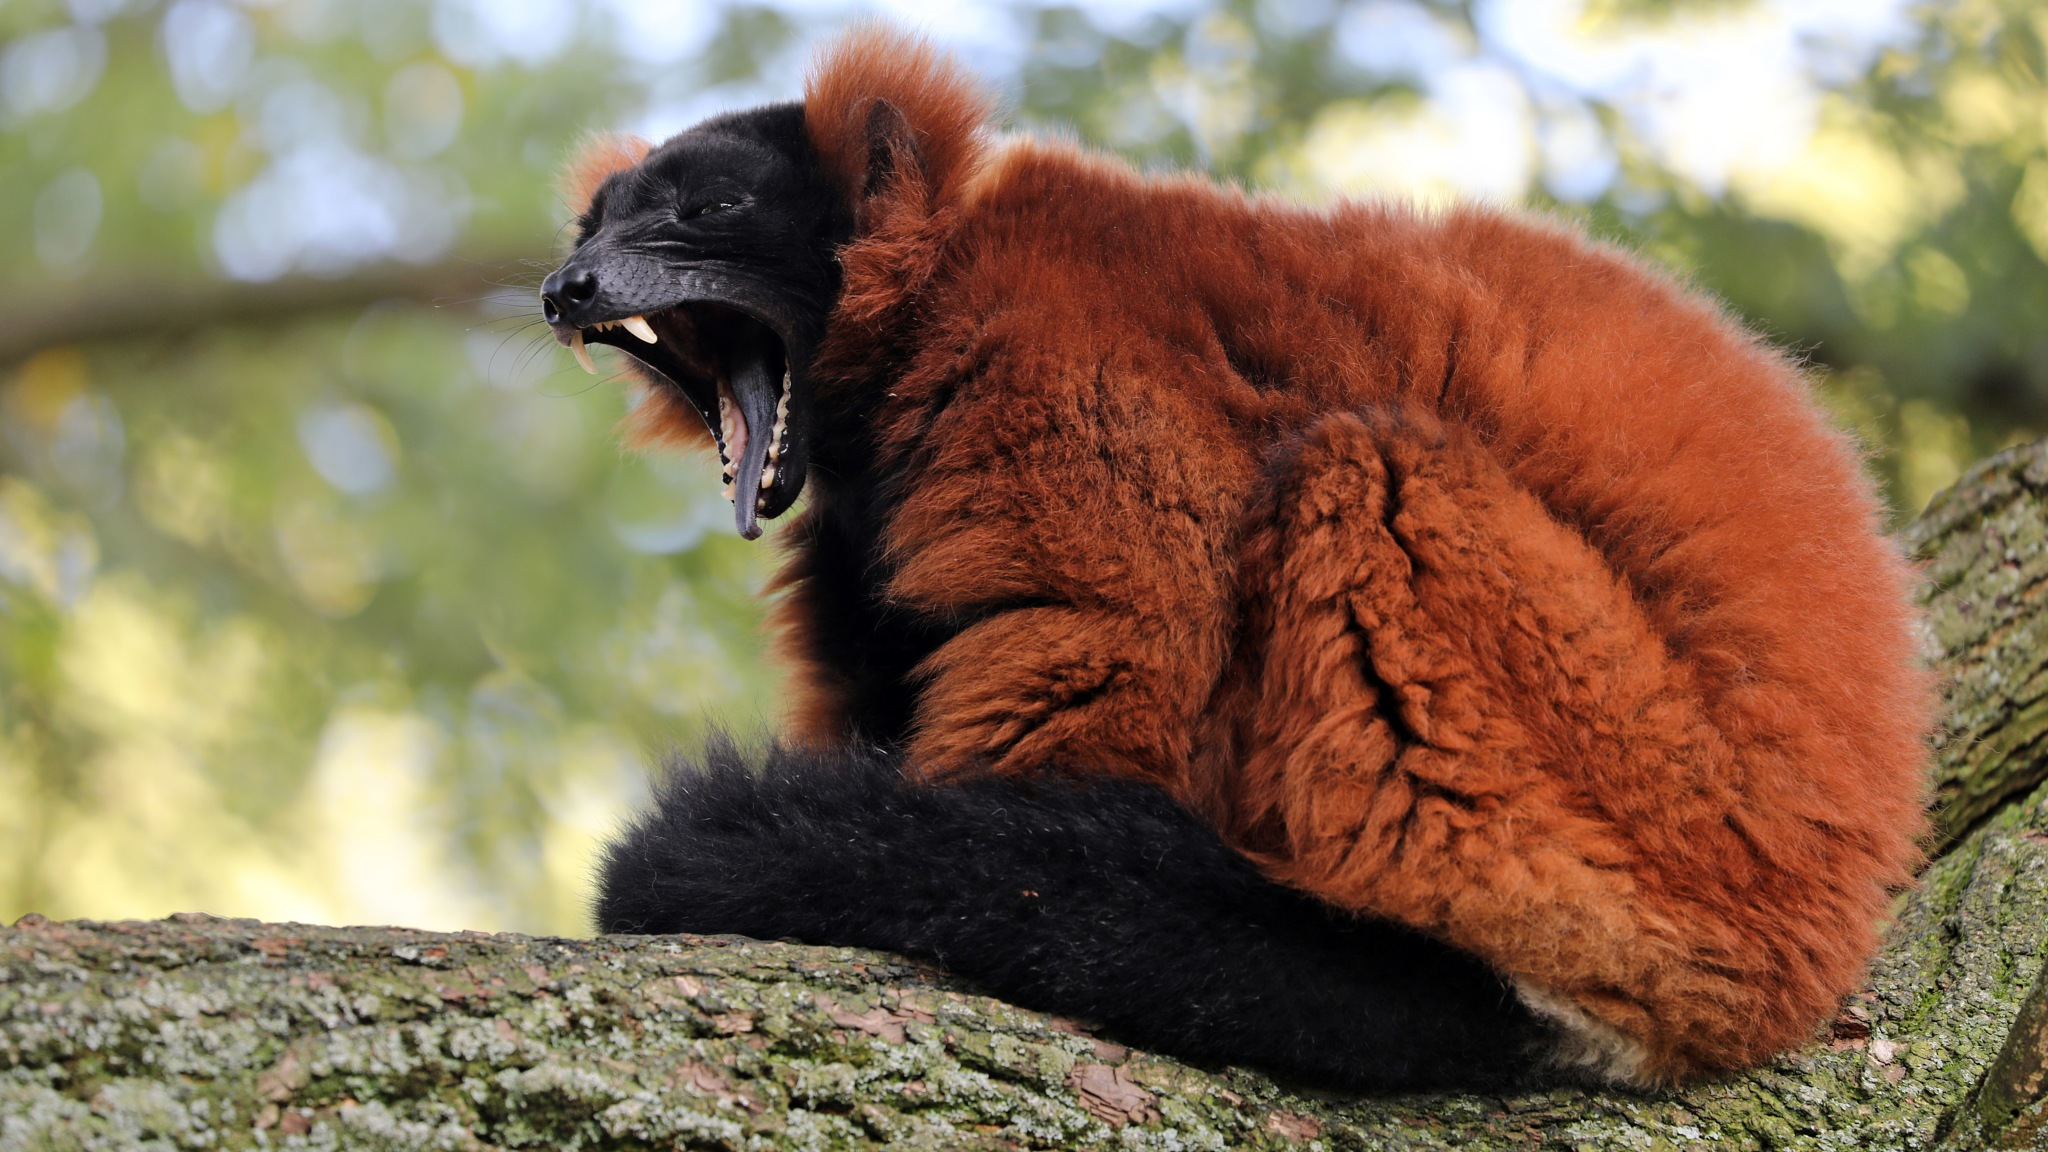 Red ruffed lemur by Edwin Butter